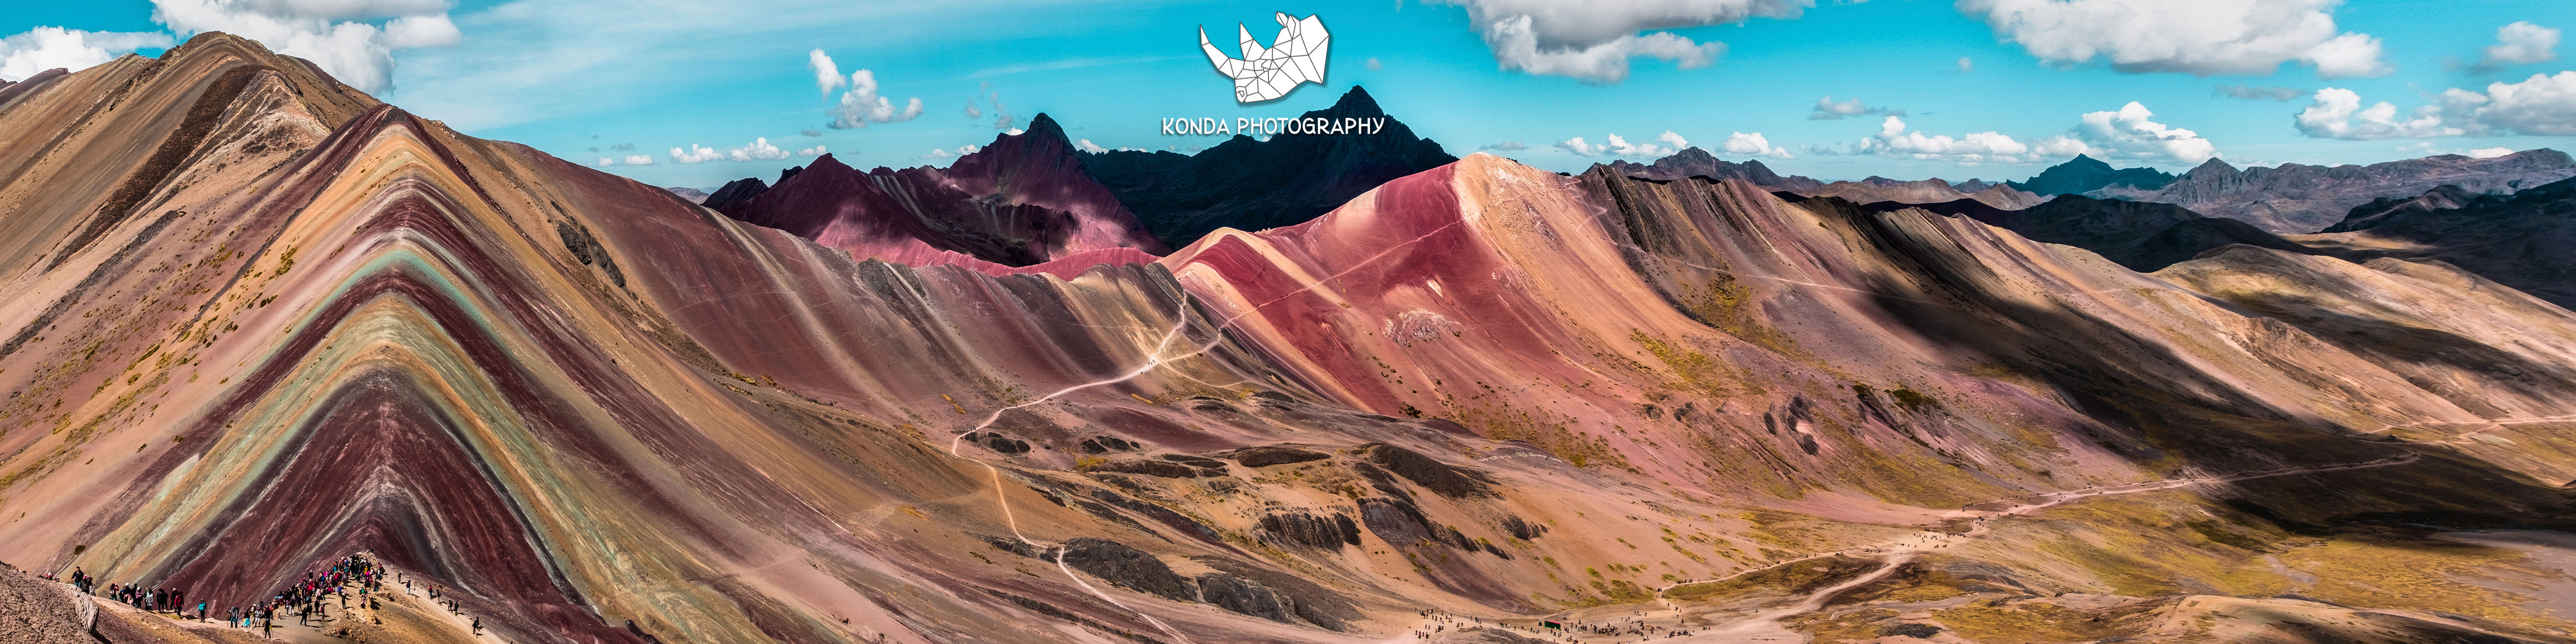 Cover of Konda Photography